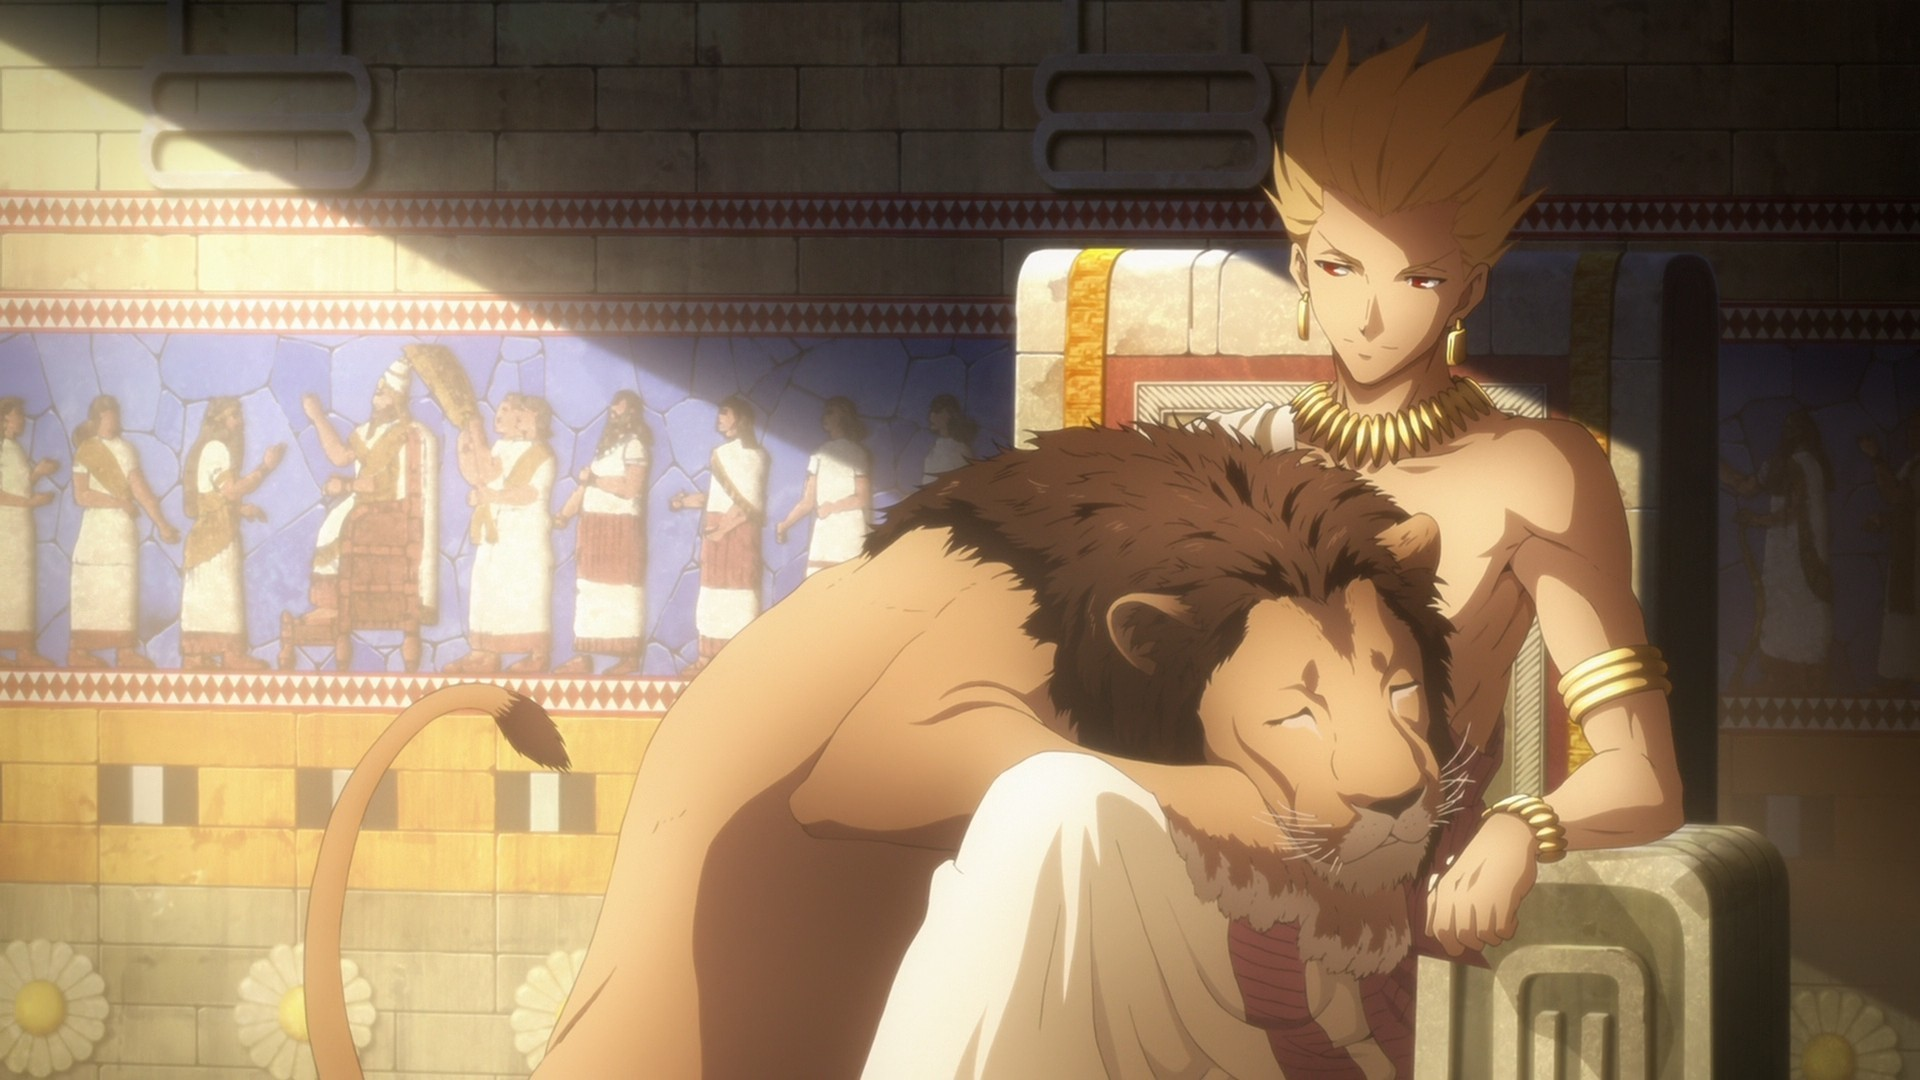 an analysis of the theme of companionship in the epic of gilgamesh Free essay: love and death in the epic of gilgamesh abstract: the most interesting stories invariably are about love and death these two themes underlie the.